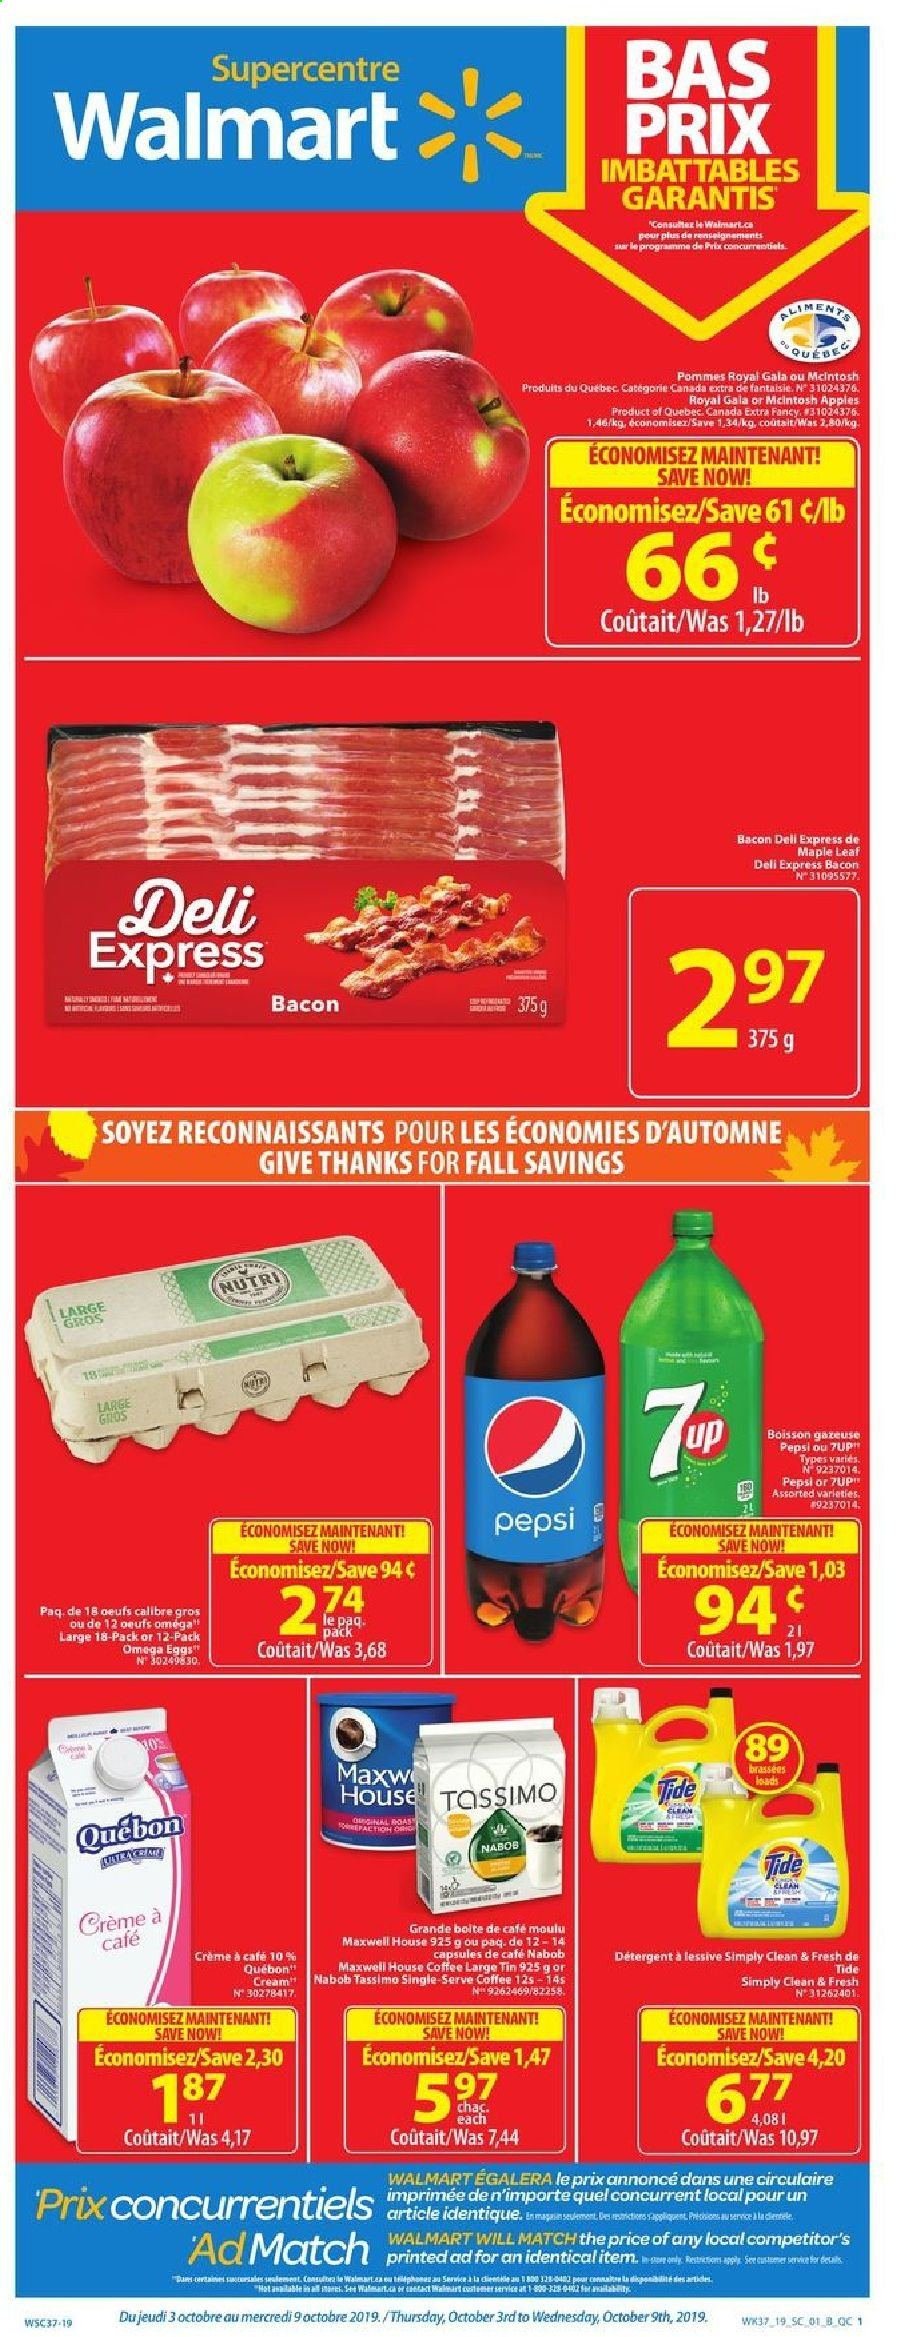 Walmart Flyer - October 03, 2019 - October 09, 2019 - Sales products - apples, bacon, capsules, coffee, cream, crème, dell, detergent, eggs, maxwell house, maxwell house coffee, tide, pears, pepsi, pommes, cafe, boisson, boîte, café moulu, mcintosh, œufs, lessive, egg. Page 1.